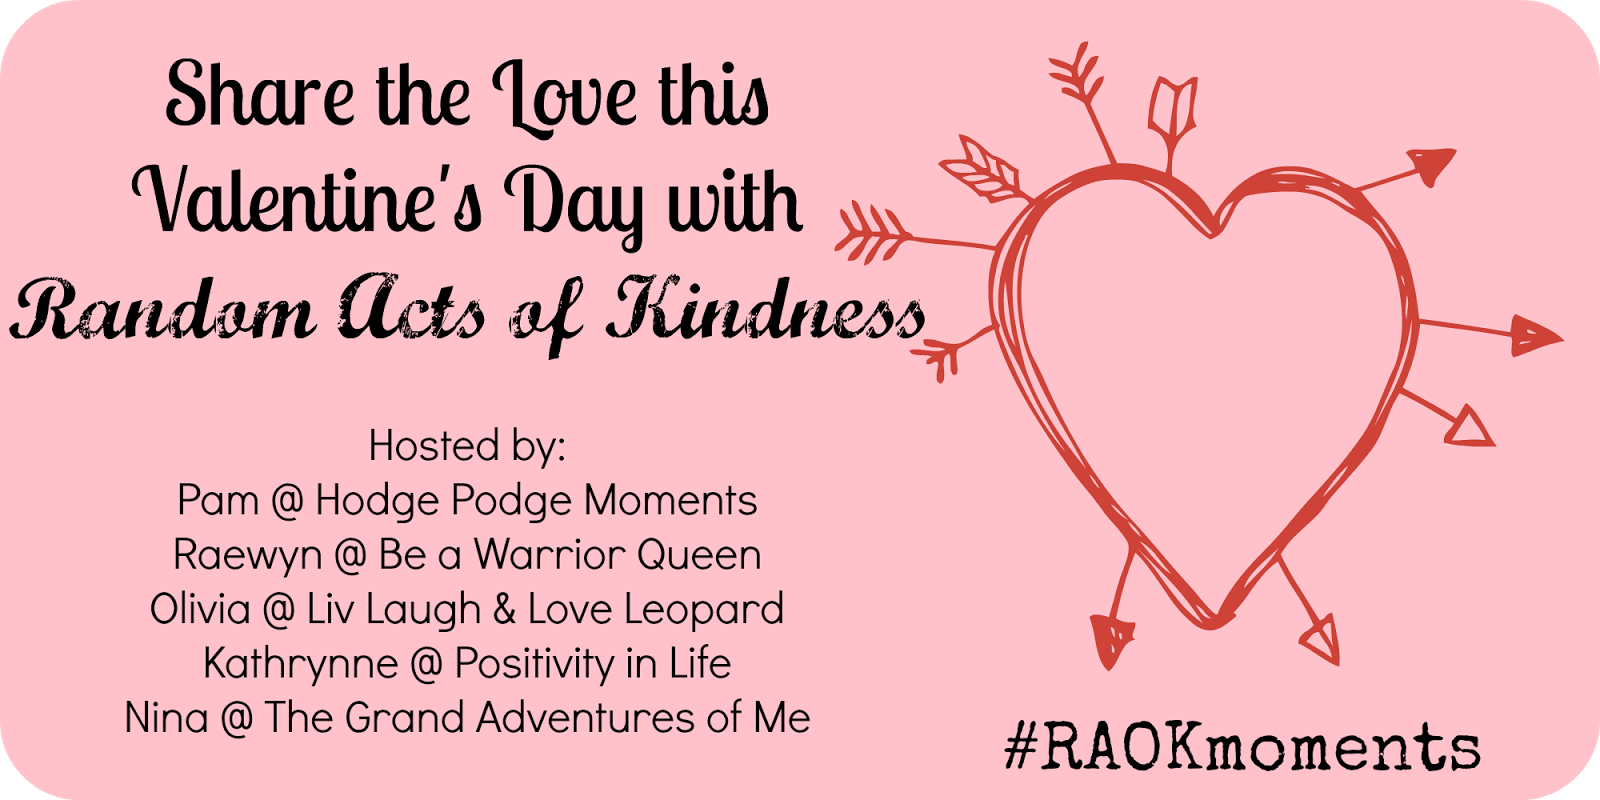 http://www.hodgepodgemoments.com/2015/02/share-love-with-raokmoments.html